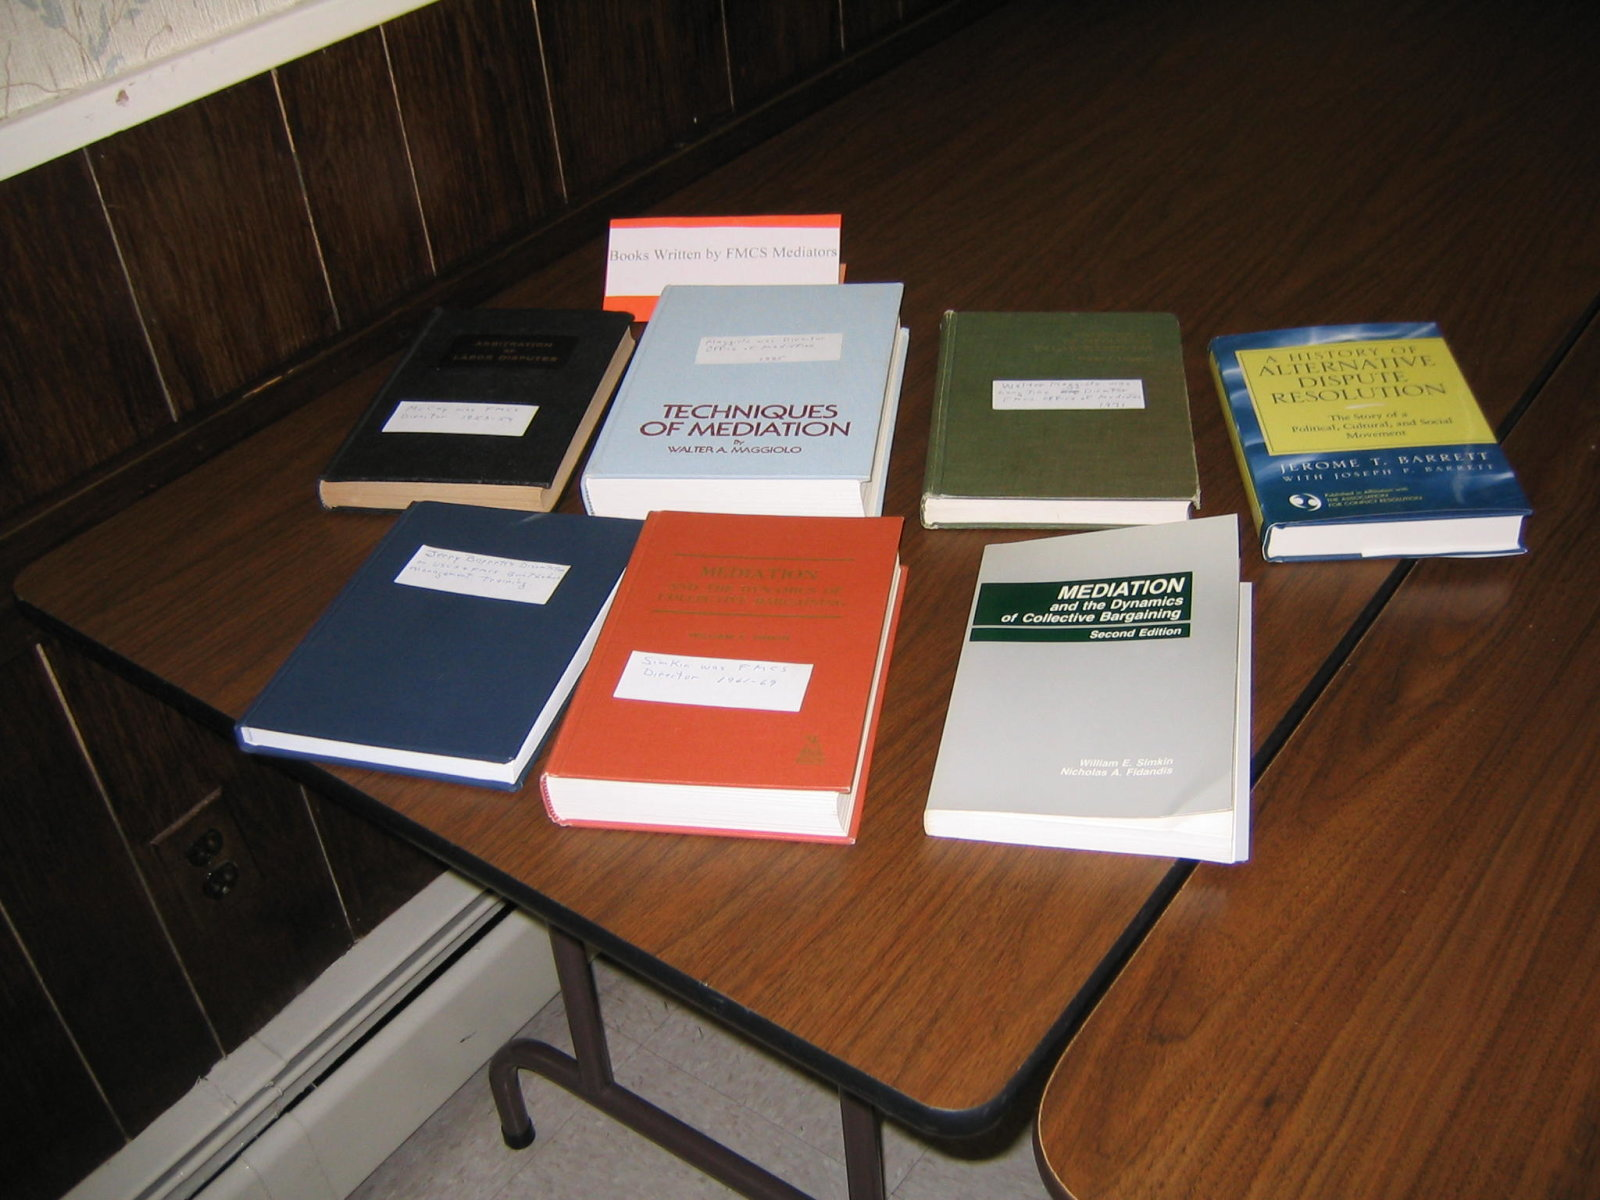 Collection of books on labor relations and conflict resolution